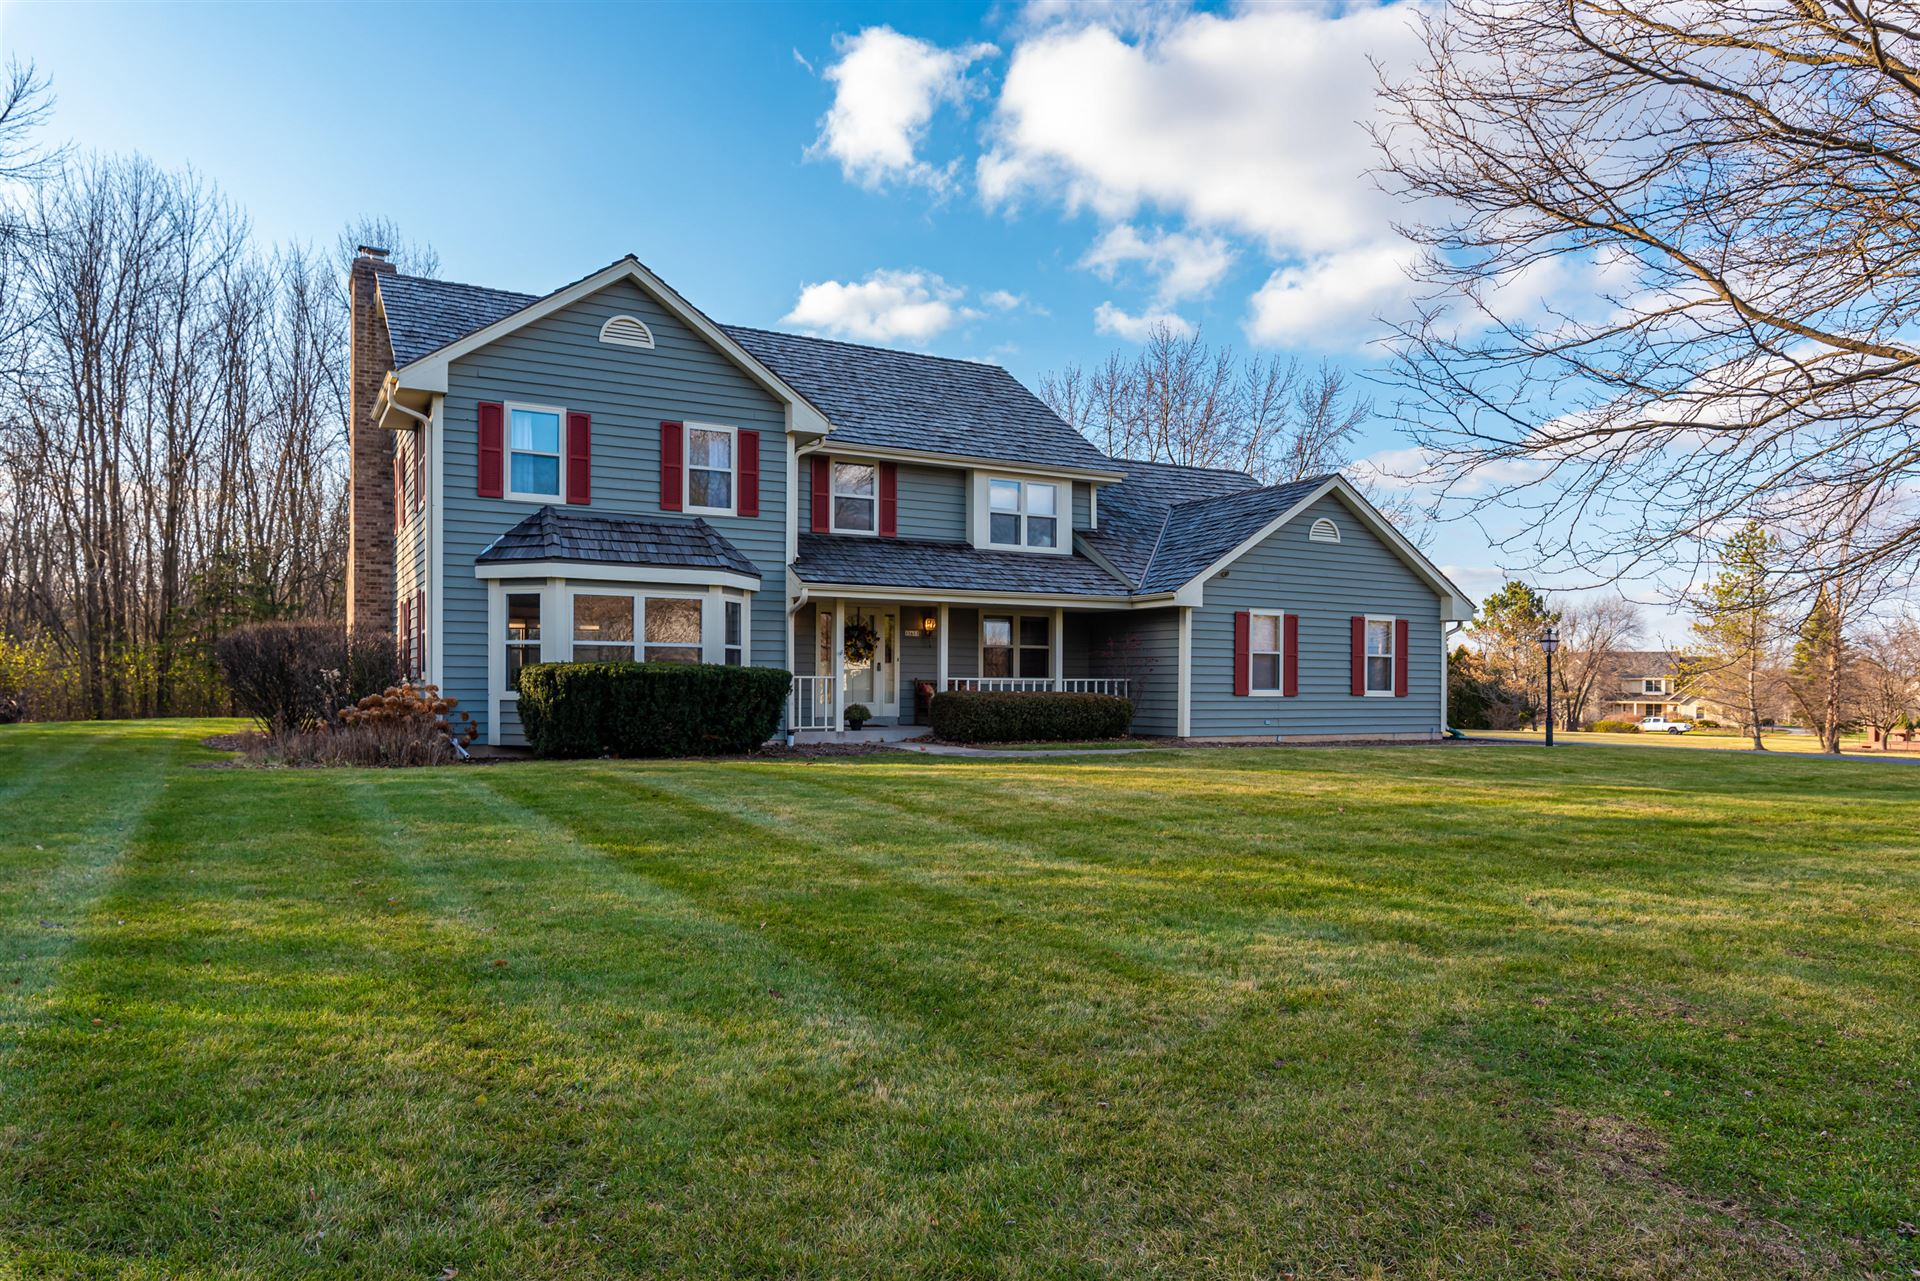 11613 N Riverland Rd, Mequon, WI 53092 - #: 1720034